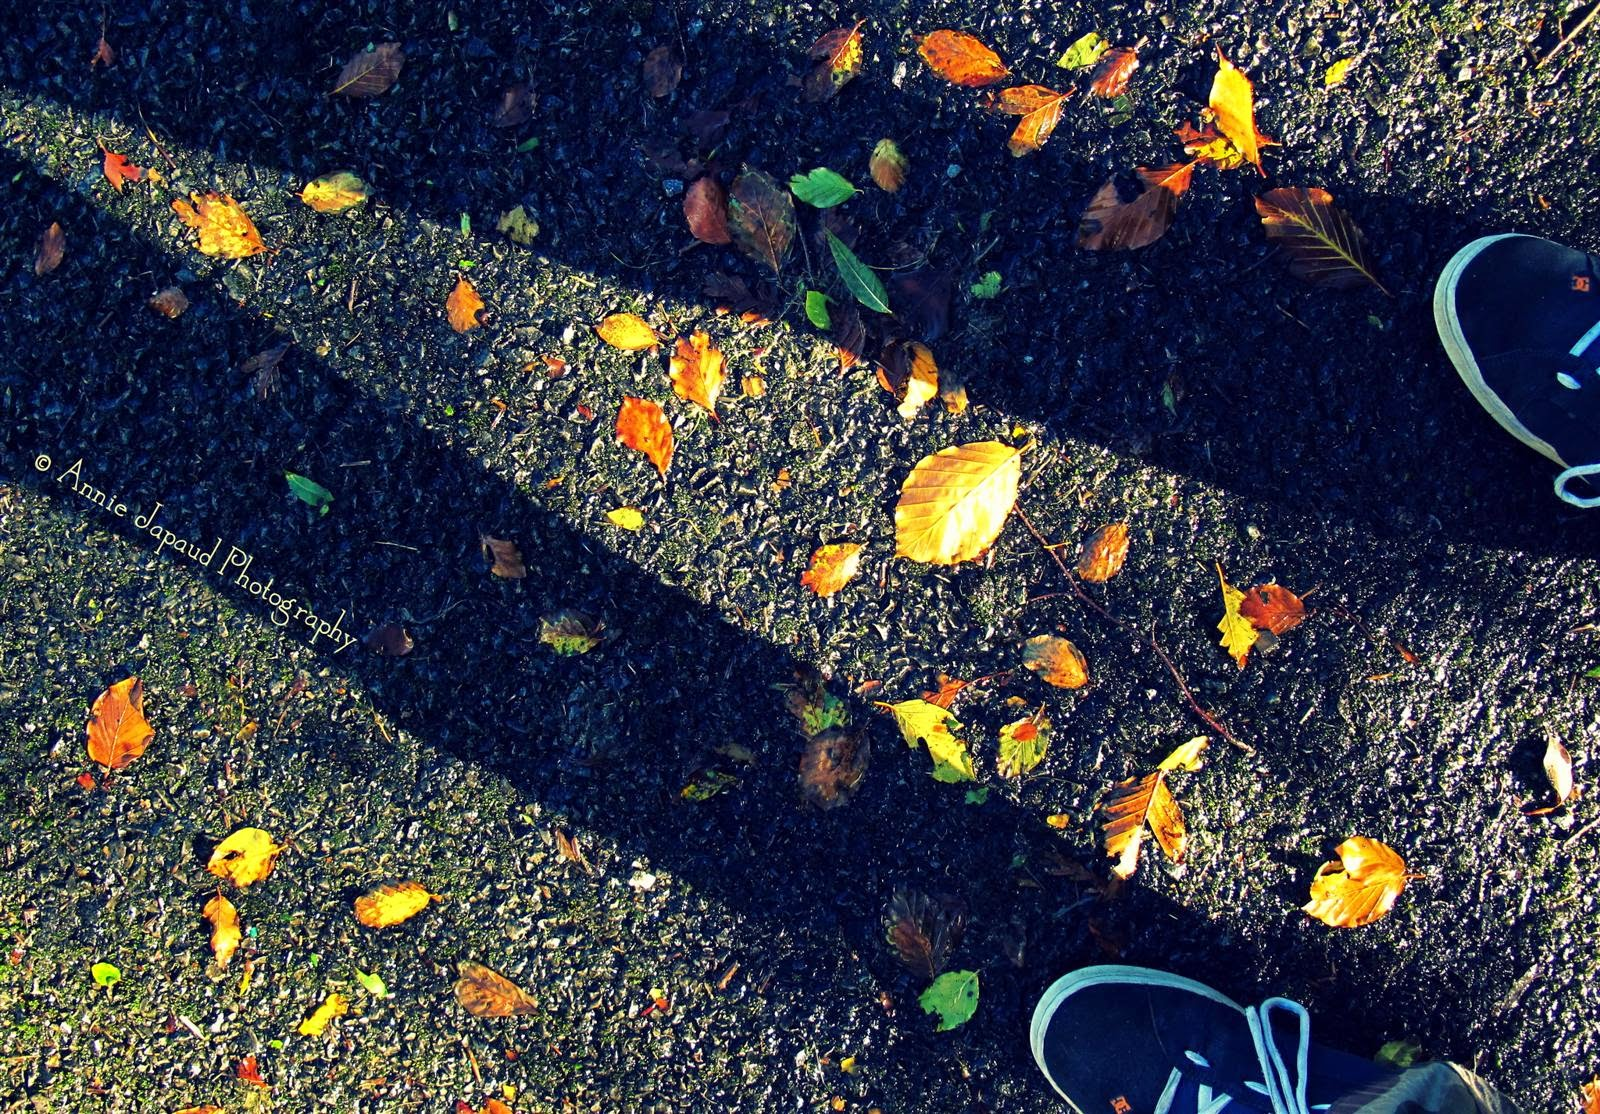 shadow on the ground covered with autumn leaves